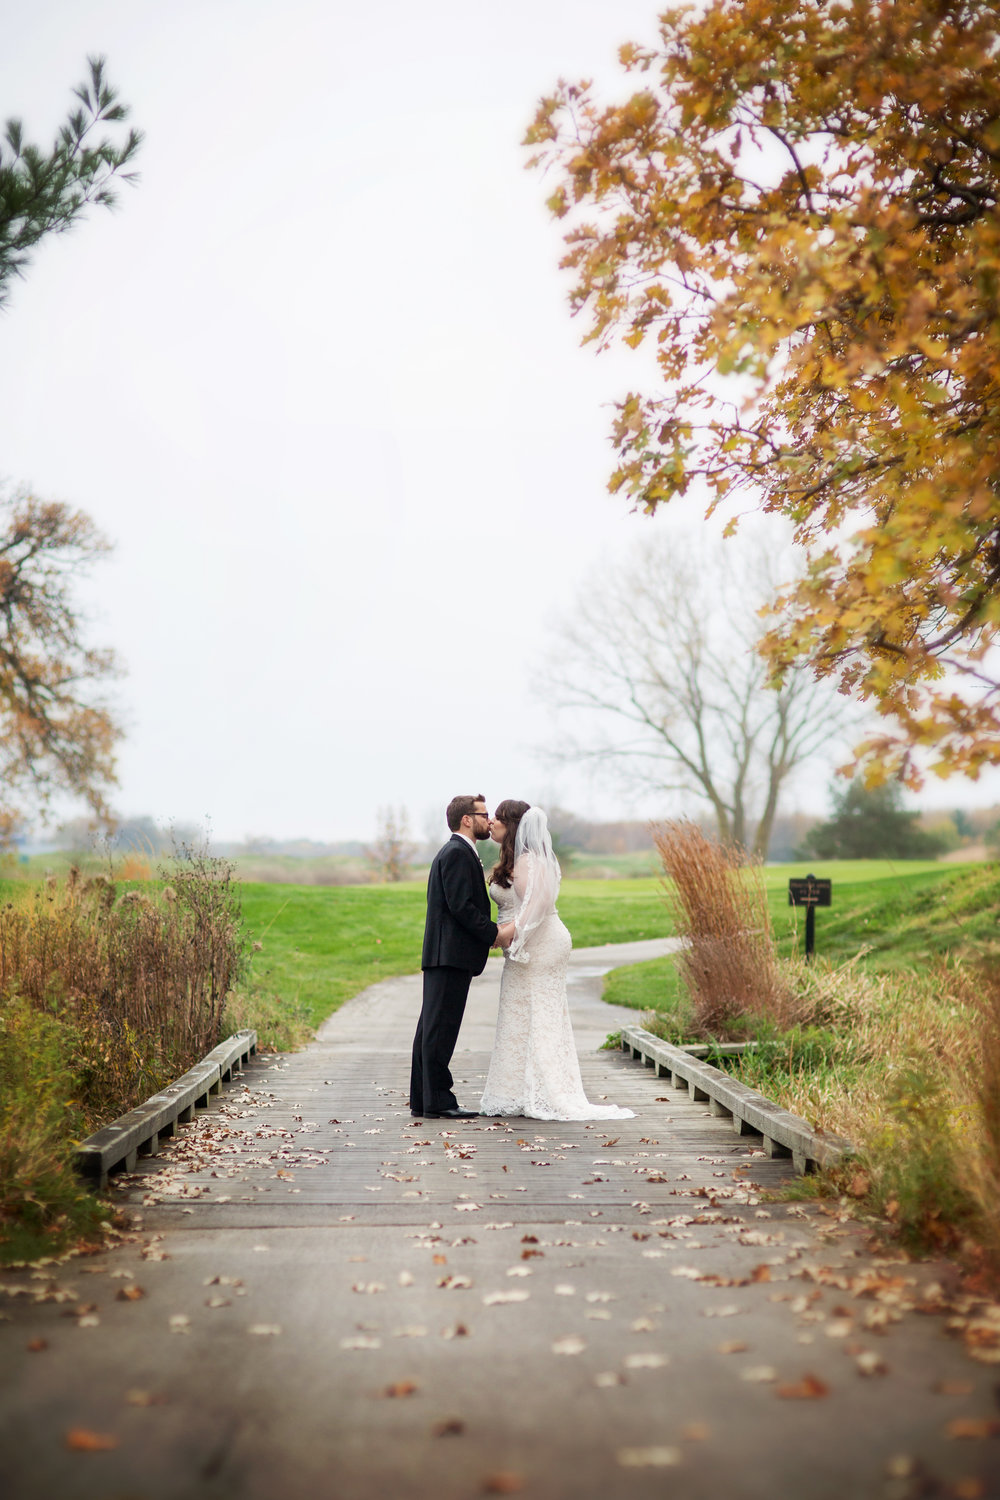 Kiesler_Wedding_CarrStudios474.jpg